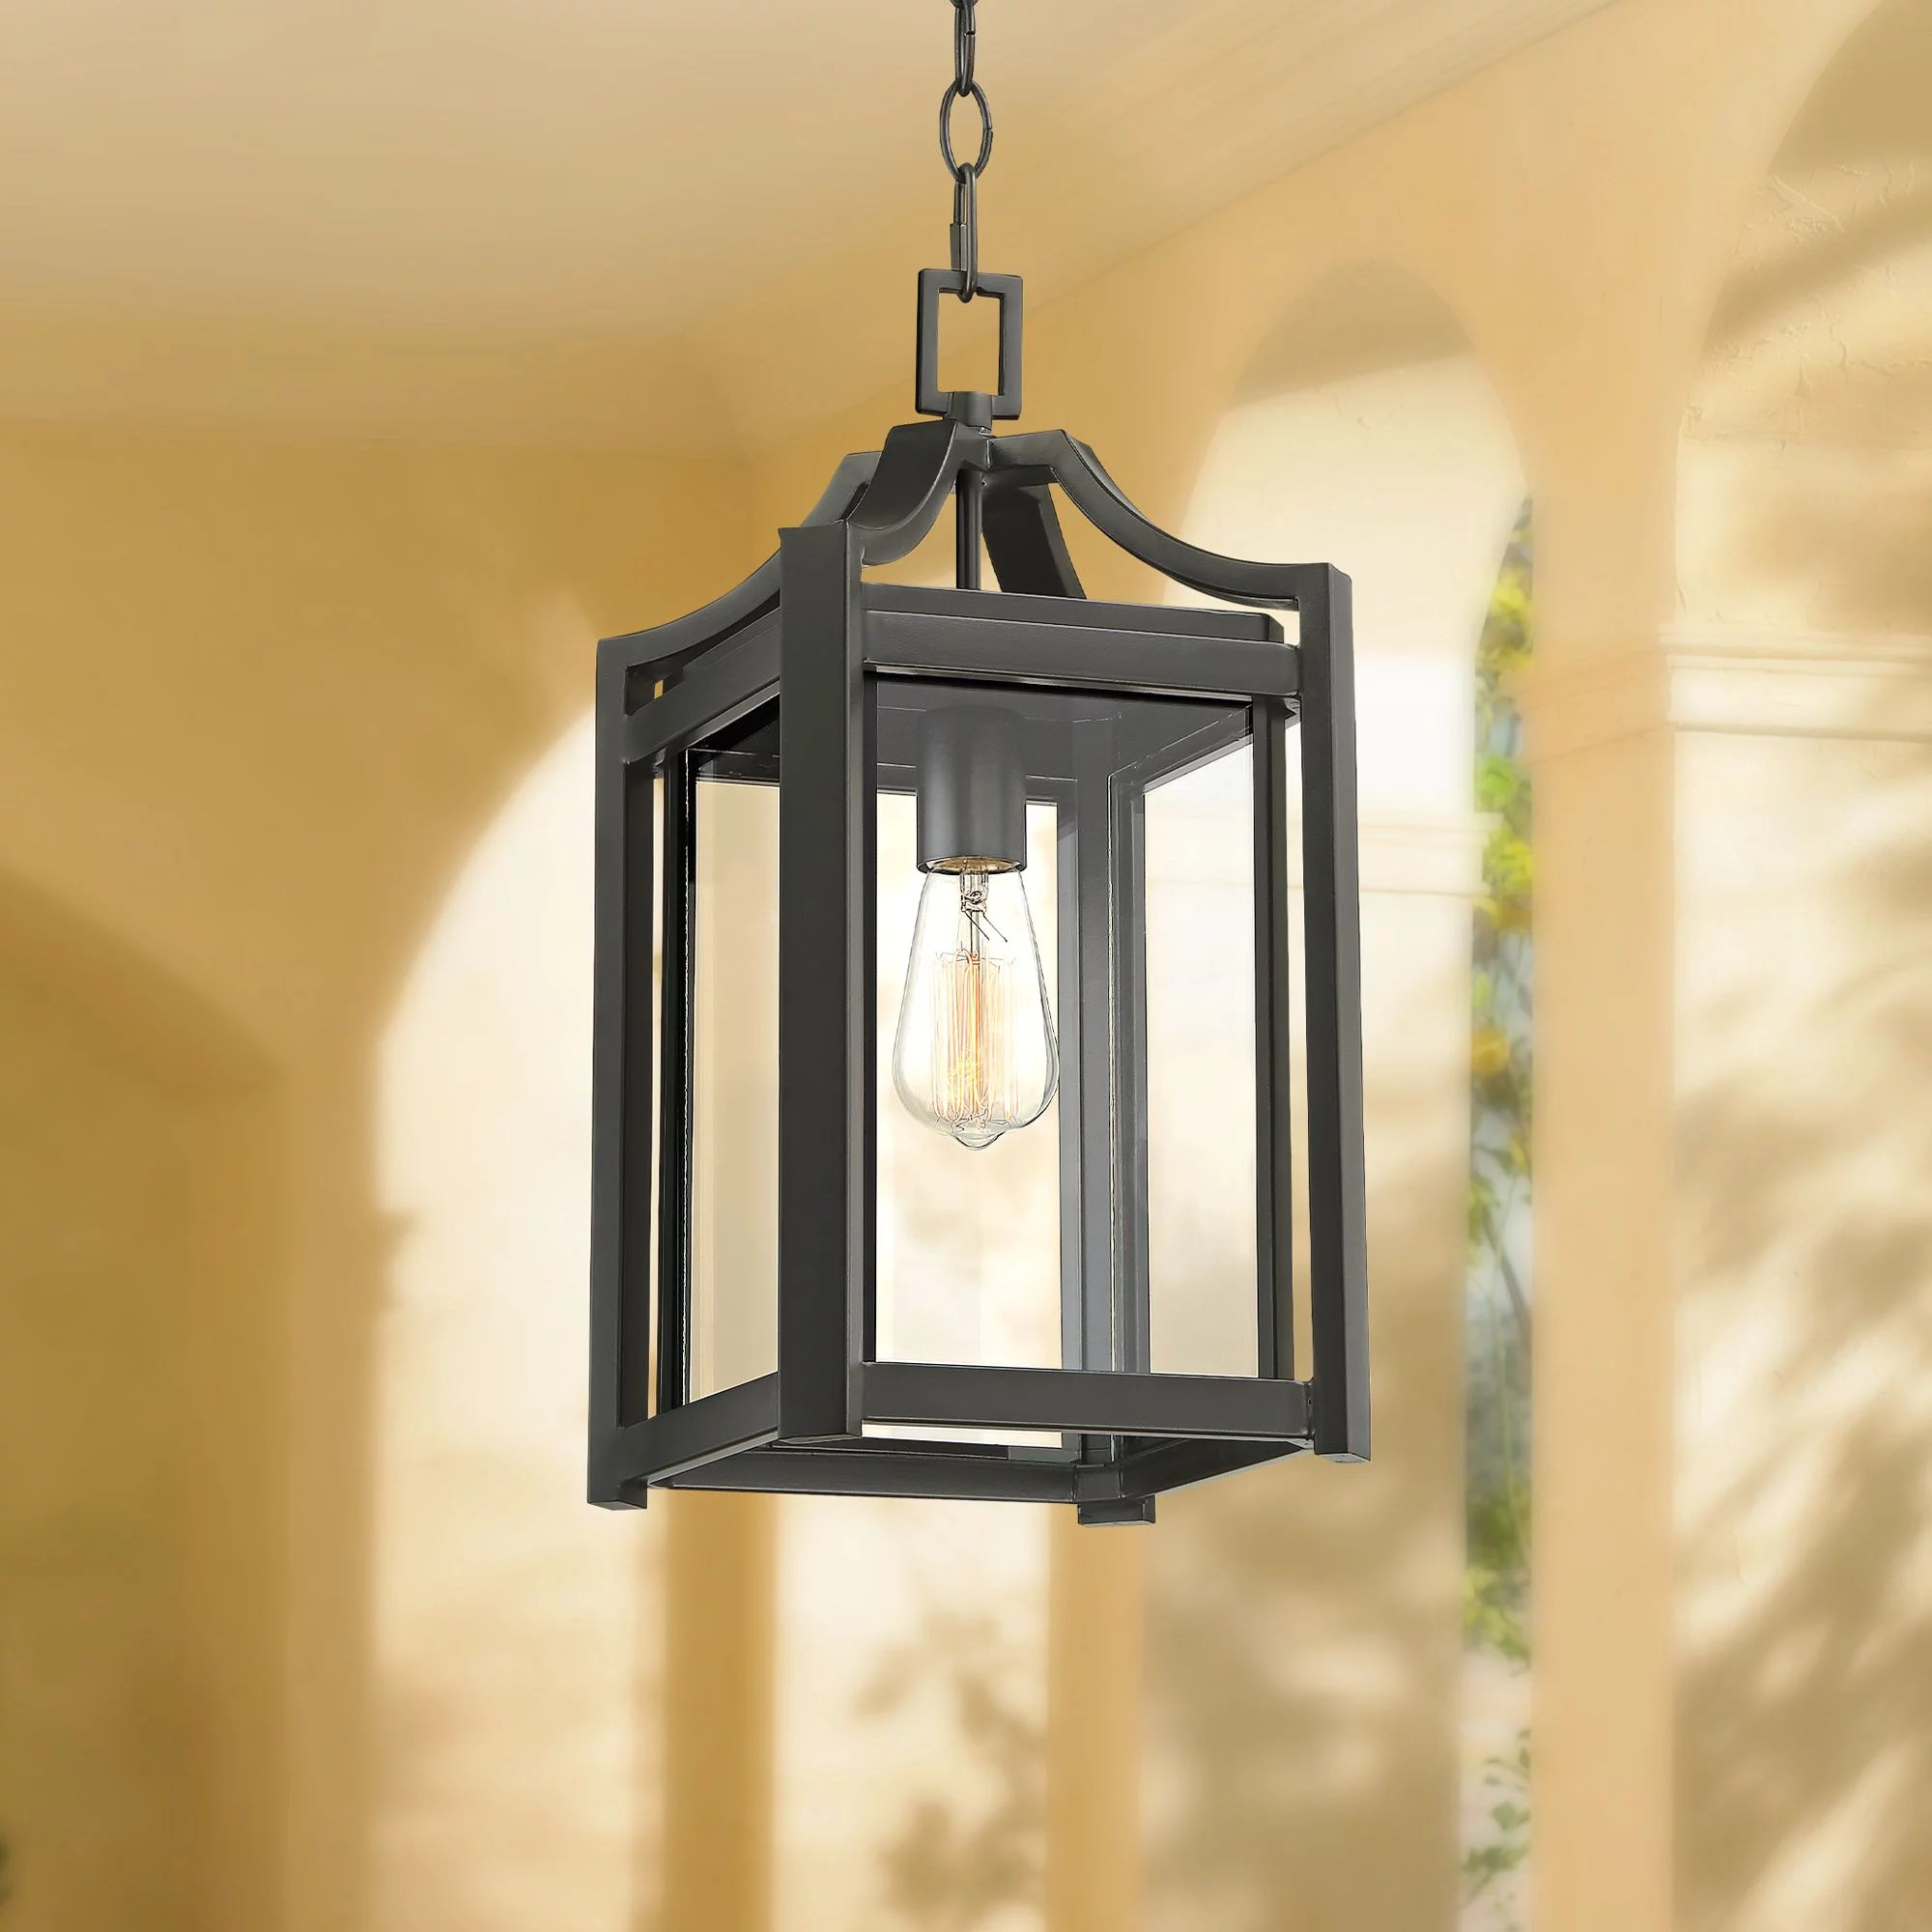 franklin iron works rustic farmhouse outdoor ceiling light hanging black 17 clear beveled glass exterior house porch patio deck walmart com